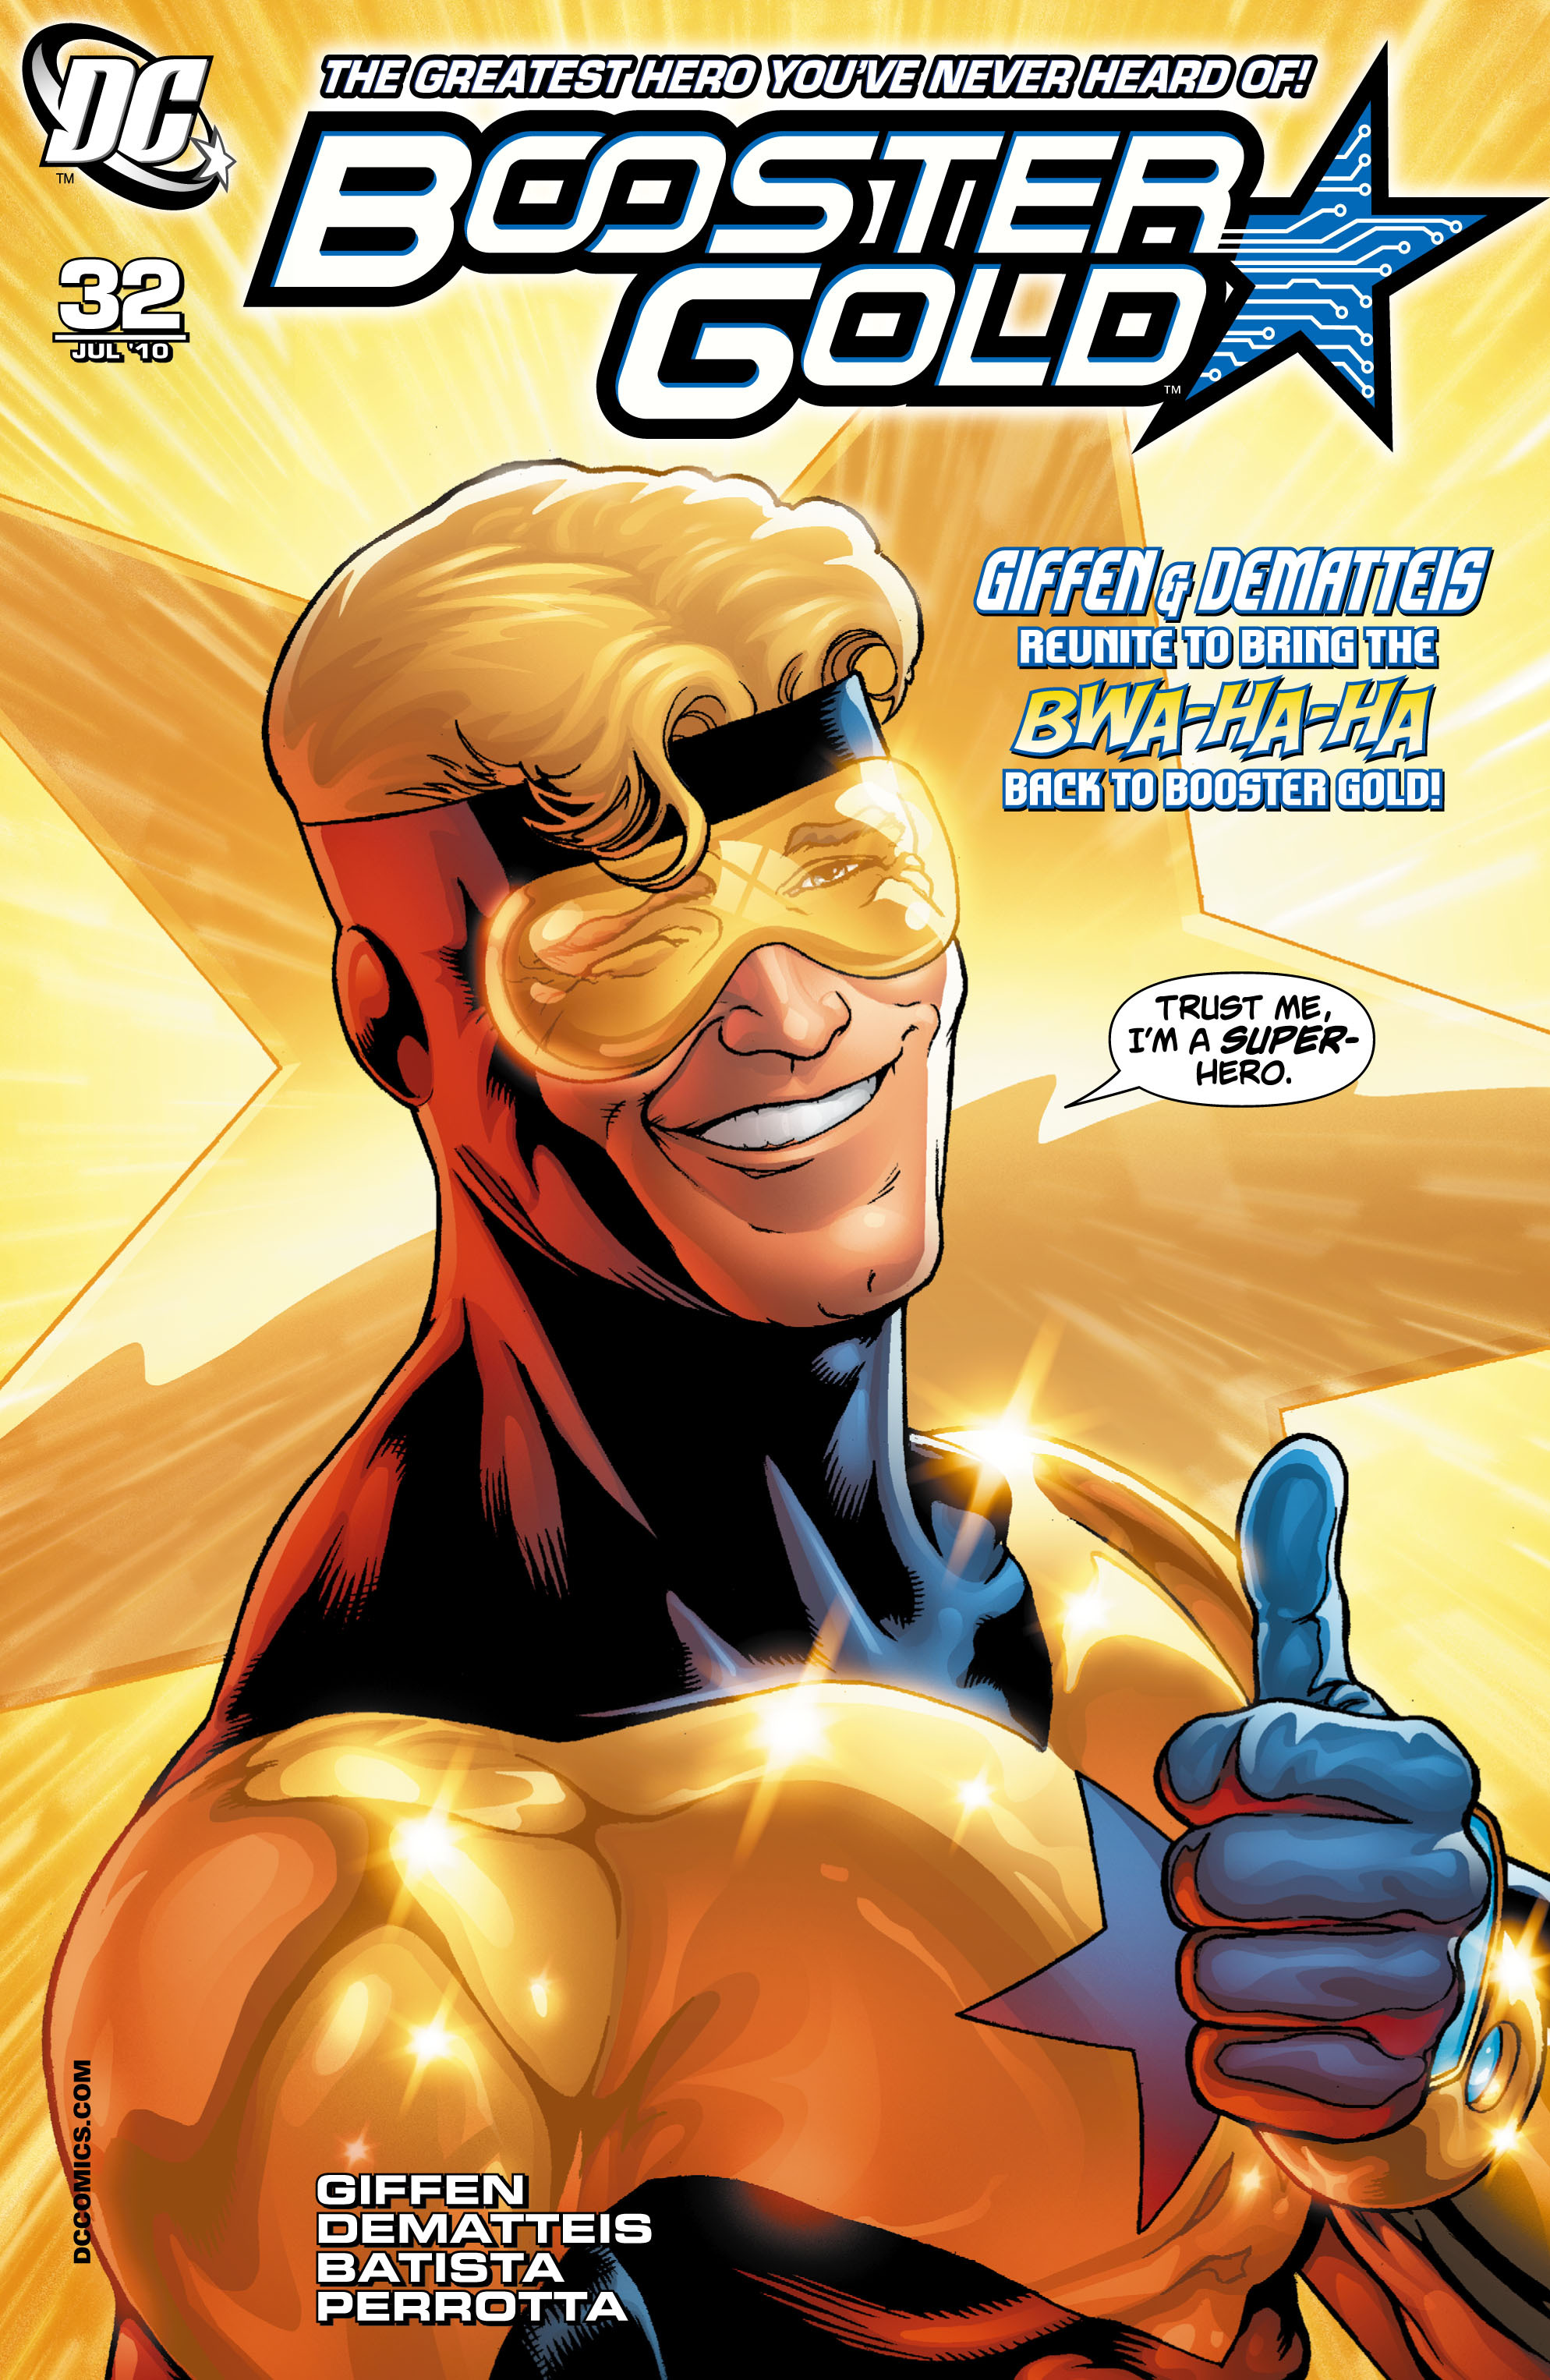 Booster Gold 2007 Issue 32